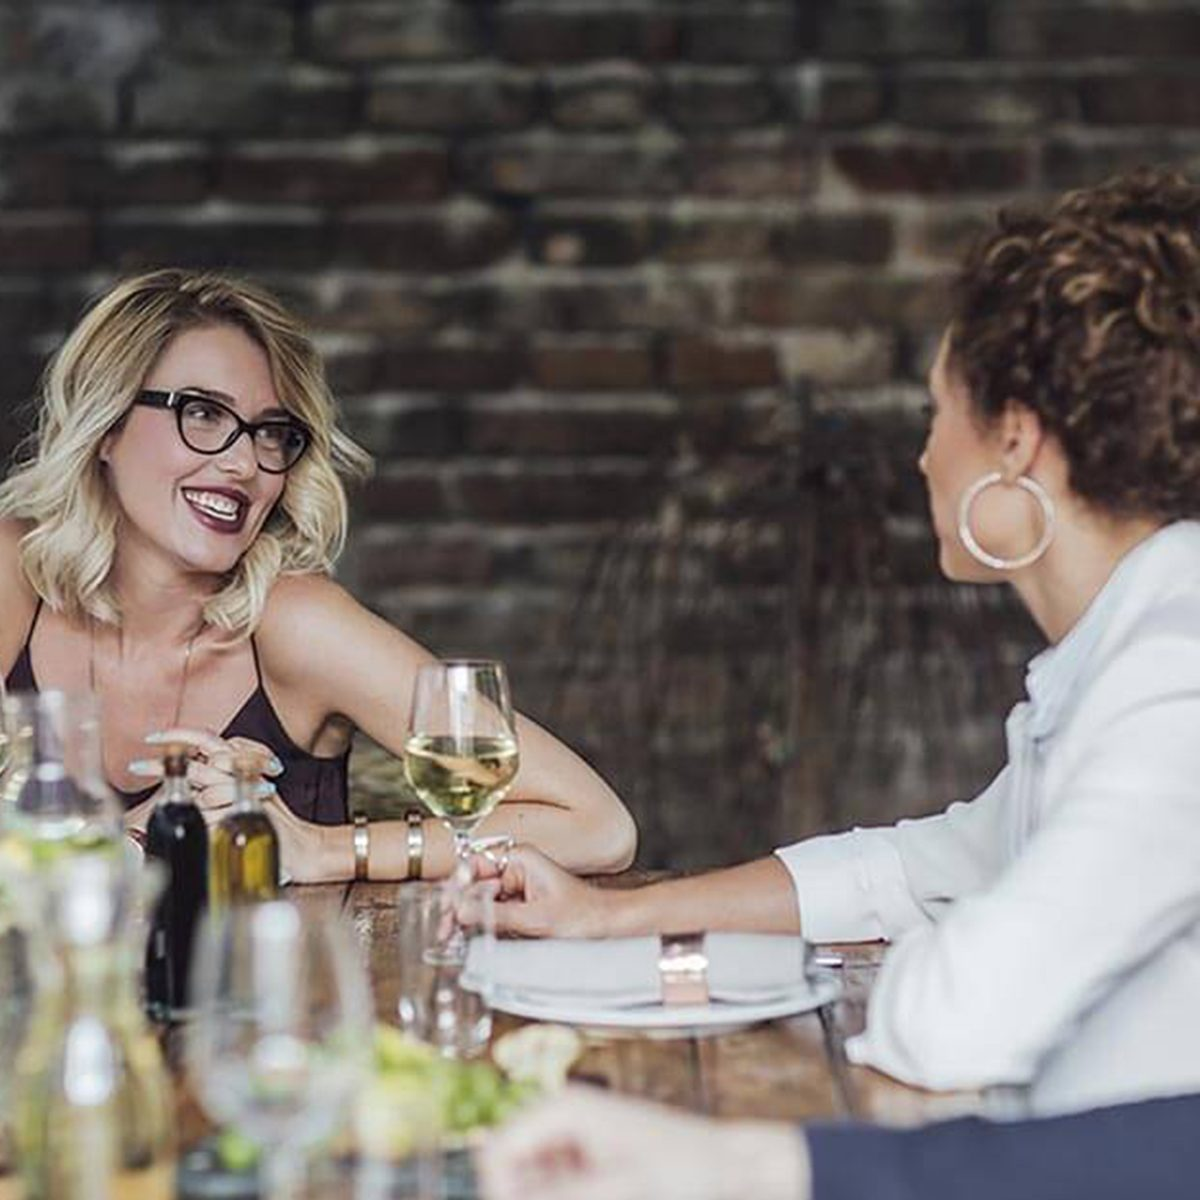 Woman smiling at each other over dinner